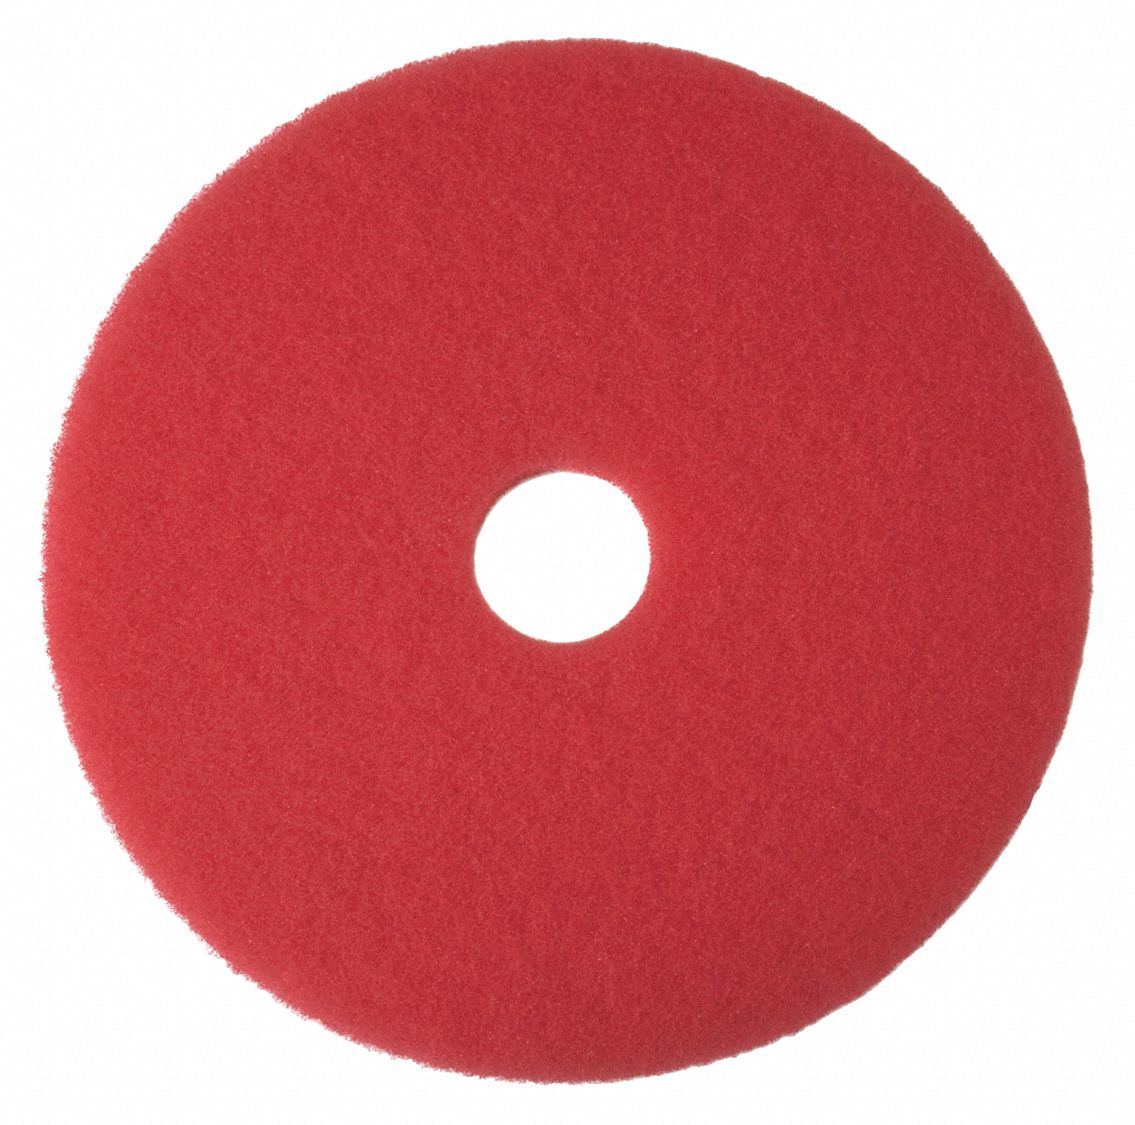 13 in Non-Woven Polyester Fiber Round Buffing Pad, 175 to 600 rpm, Red, 5 PK